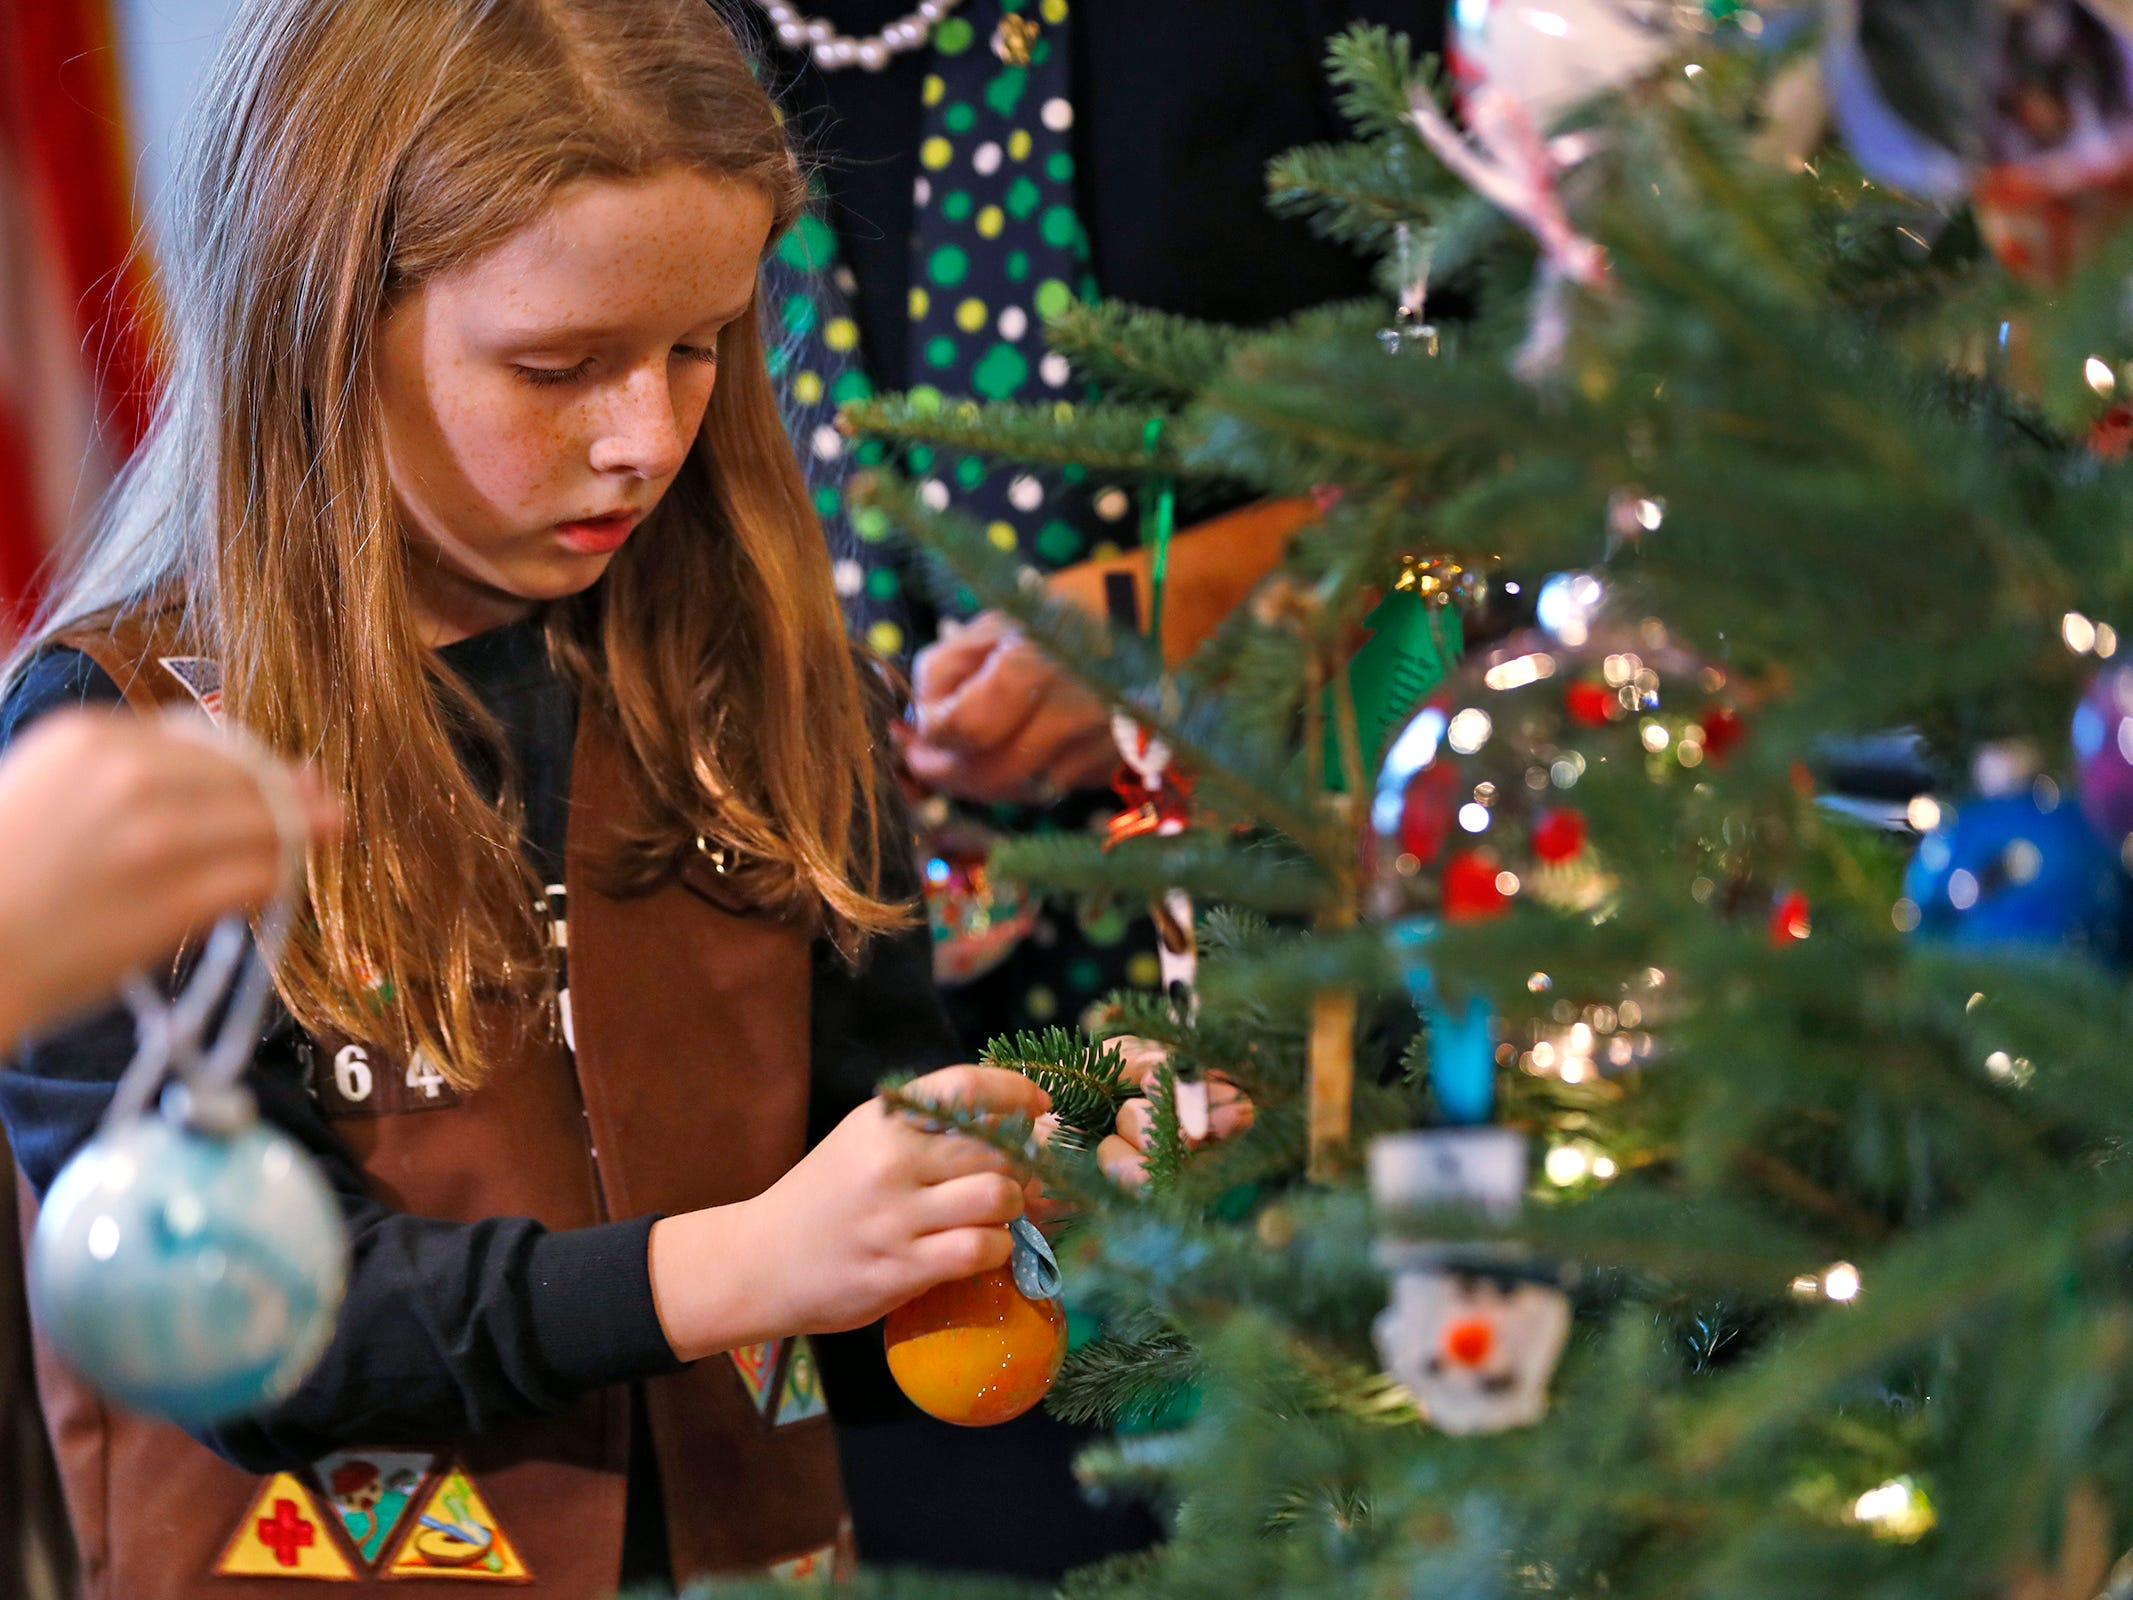 Vivian Bruno and other Brownies join Lieutenant Governor Suzanne Crouch to decorate her Indiana Statehouse tree for the holidays, Wednesday, Dec. 5, 2018.  They used ornaments created by Girl Scouts from across Central Indiana for the tree.